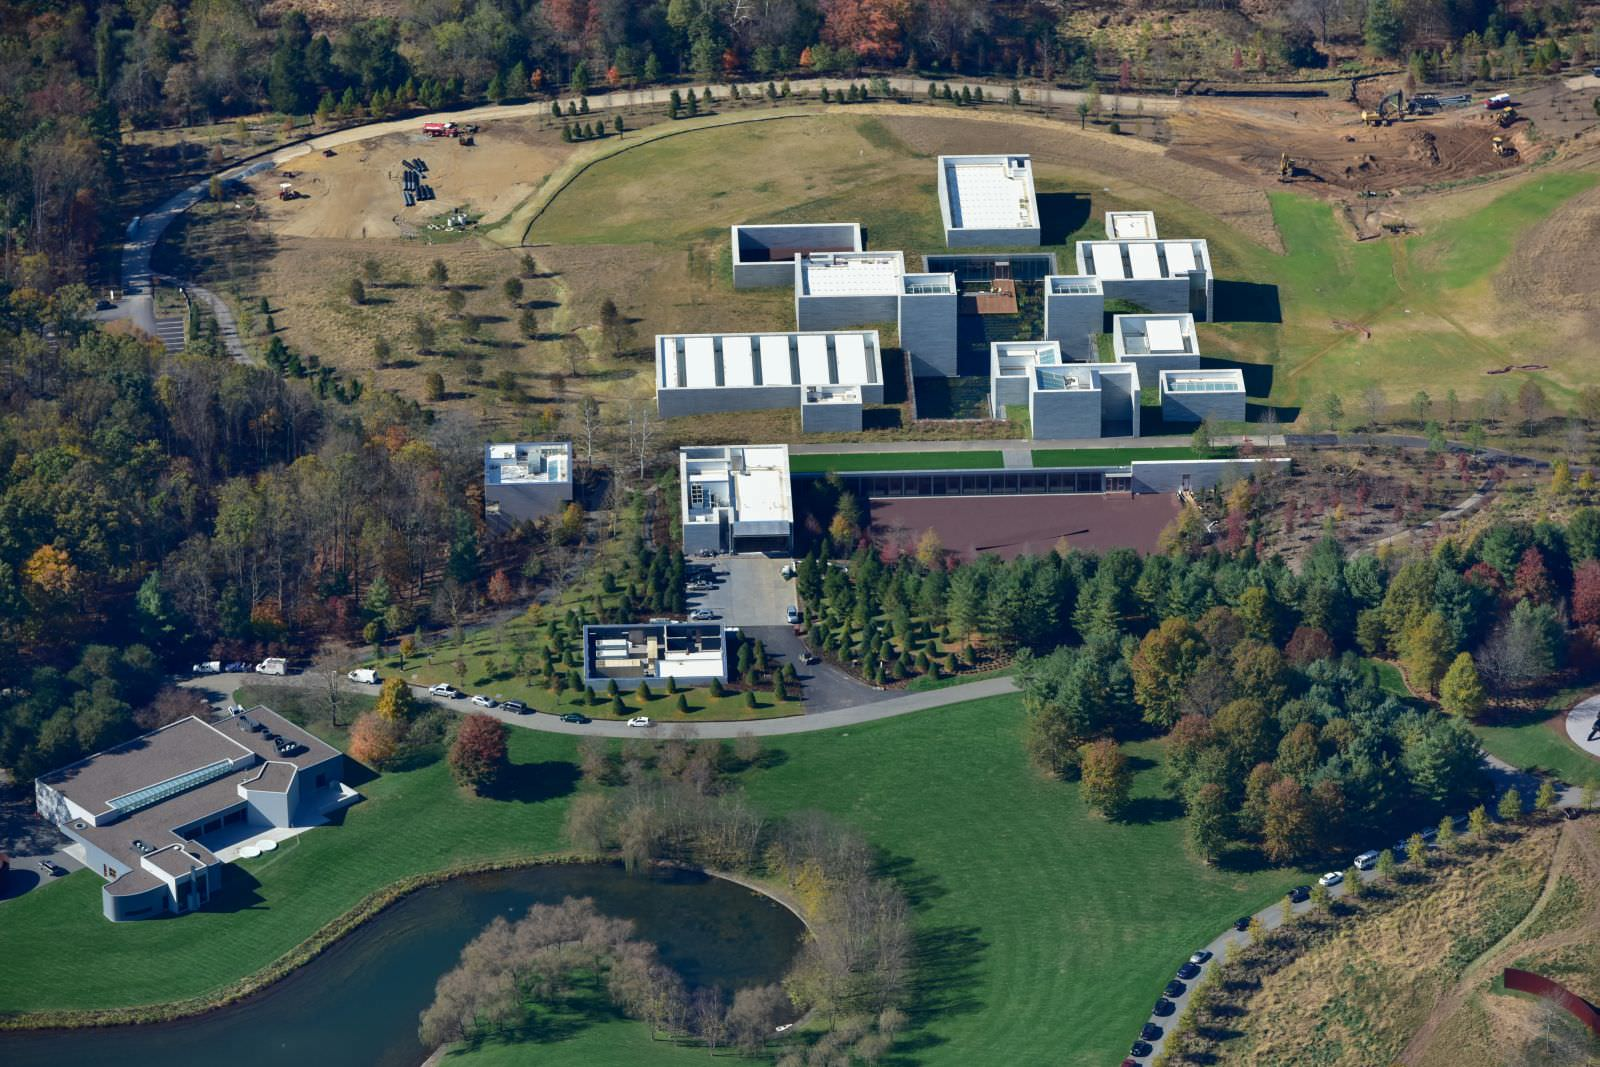 Rectangular gray buildings are surrounded by green trees, grass, and pond, seen from an aerial view.